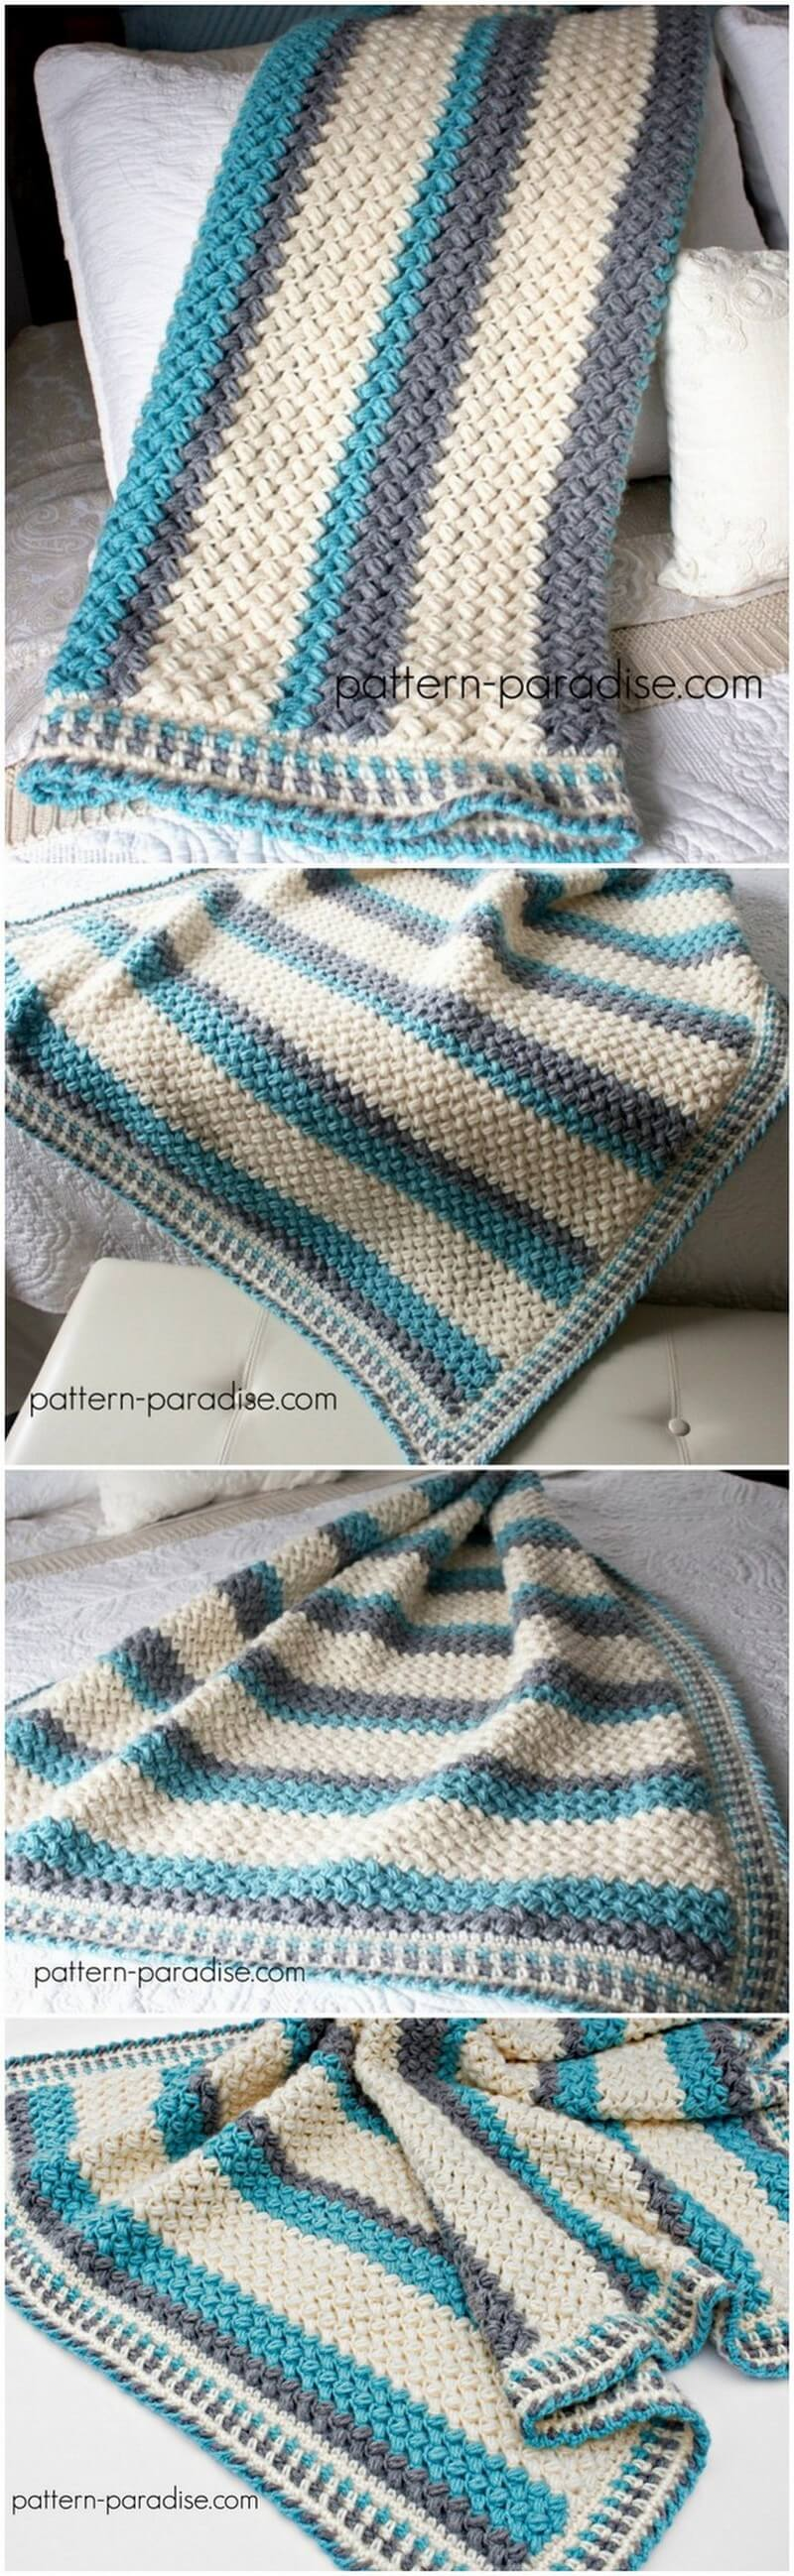 Easy Crochet Blanket Pattern (32)